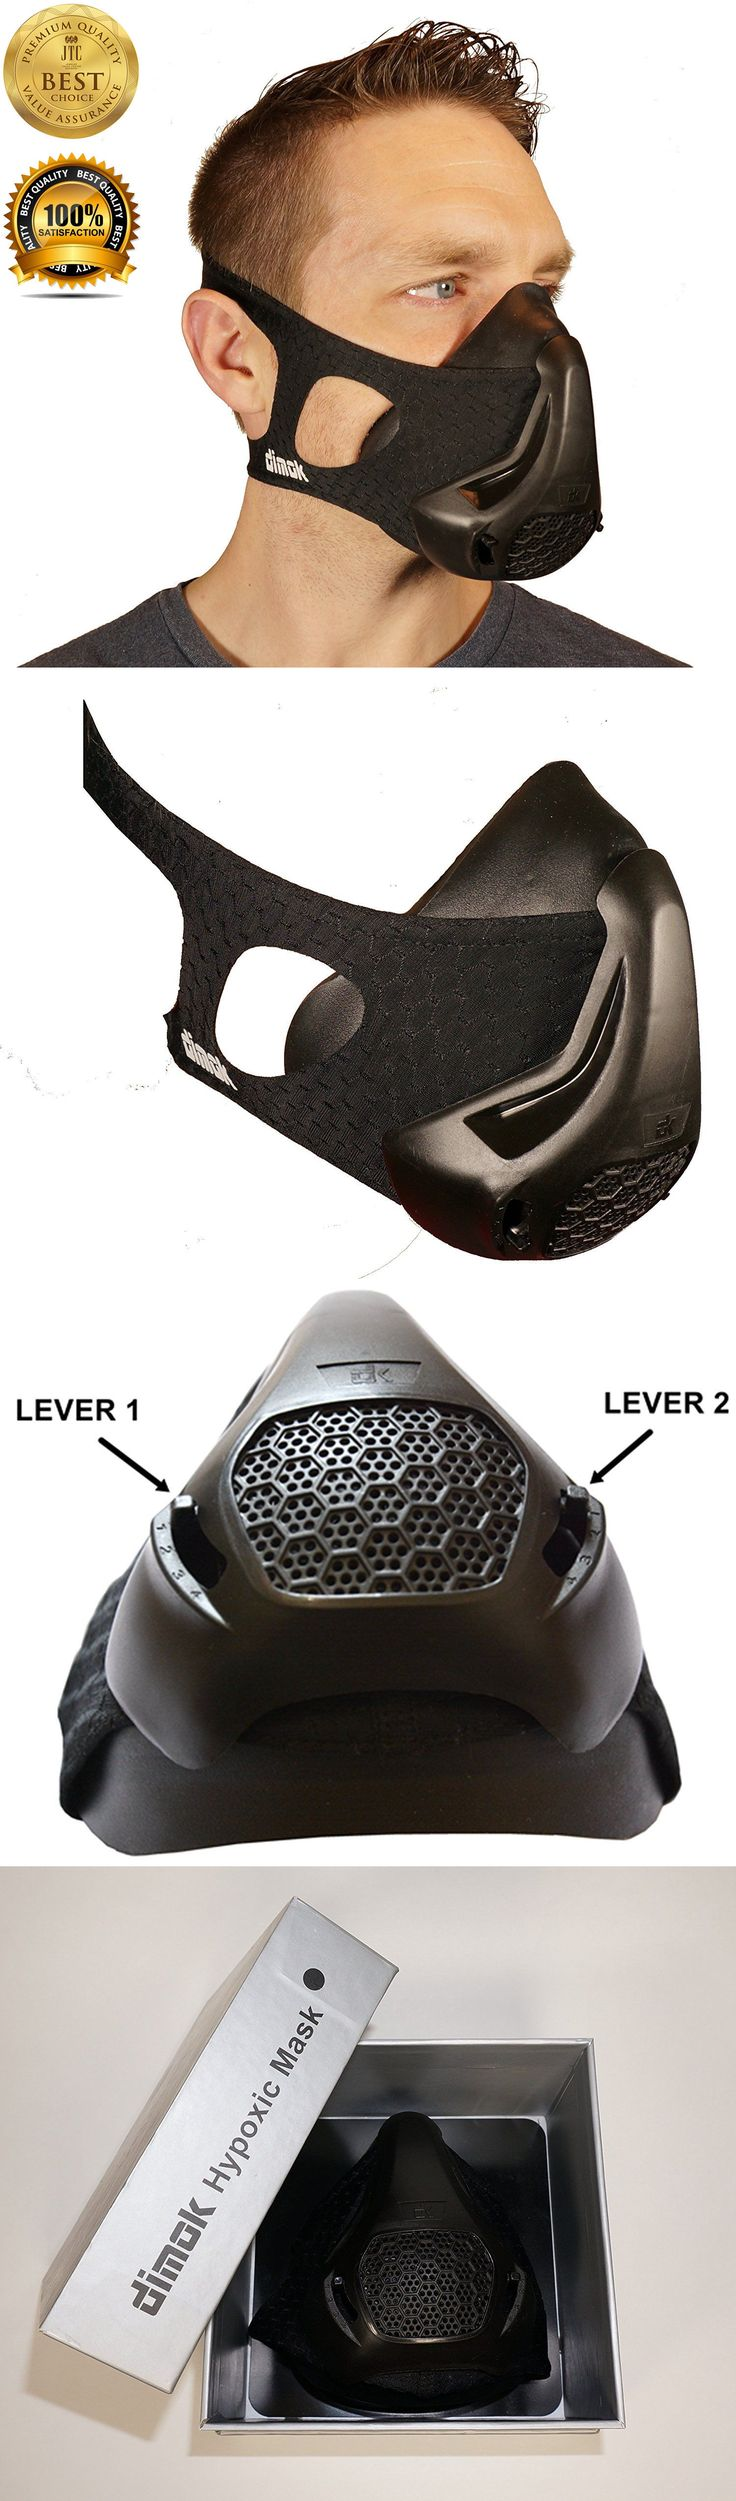 Elevation Training Masks 179787: Training Gear Mask Exercise Equipment Mma Fitness Running High Altitude Workout -> BUY IT NOW ONLY: $69.99 on eBay!